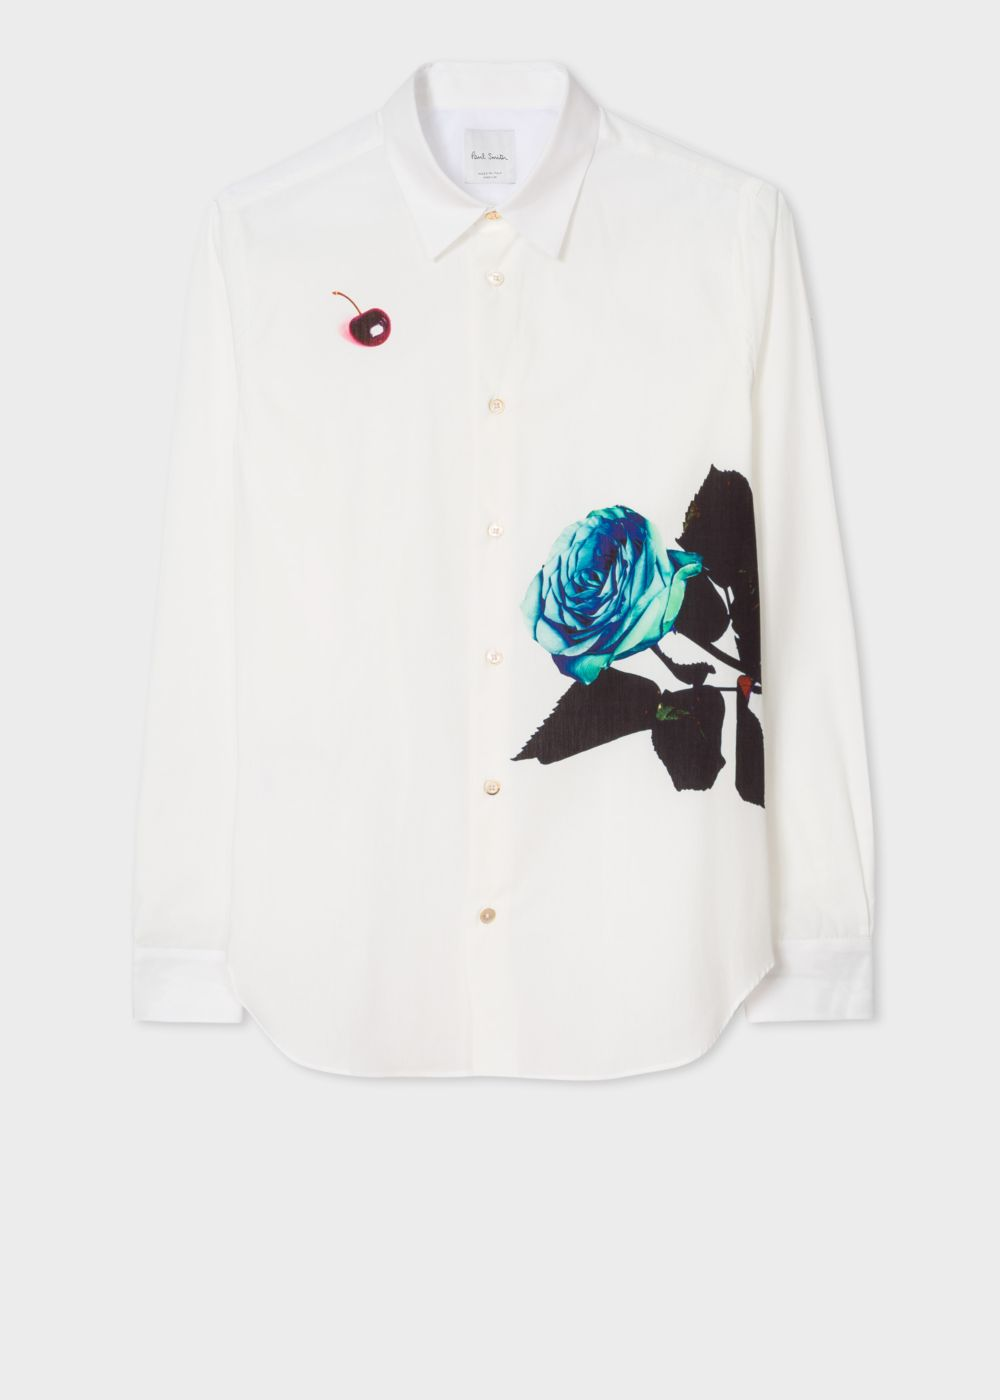 Paul Smith white rose print shirt - £275 - Obsessed.